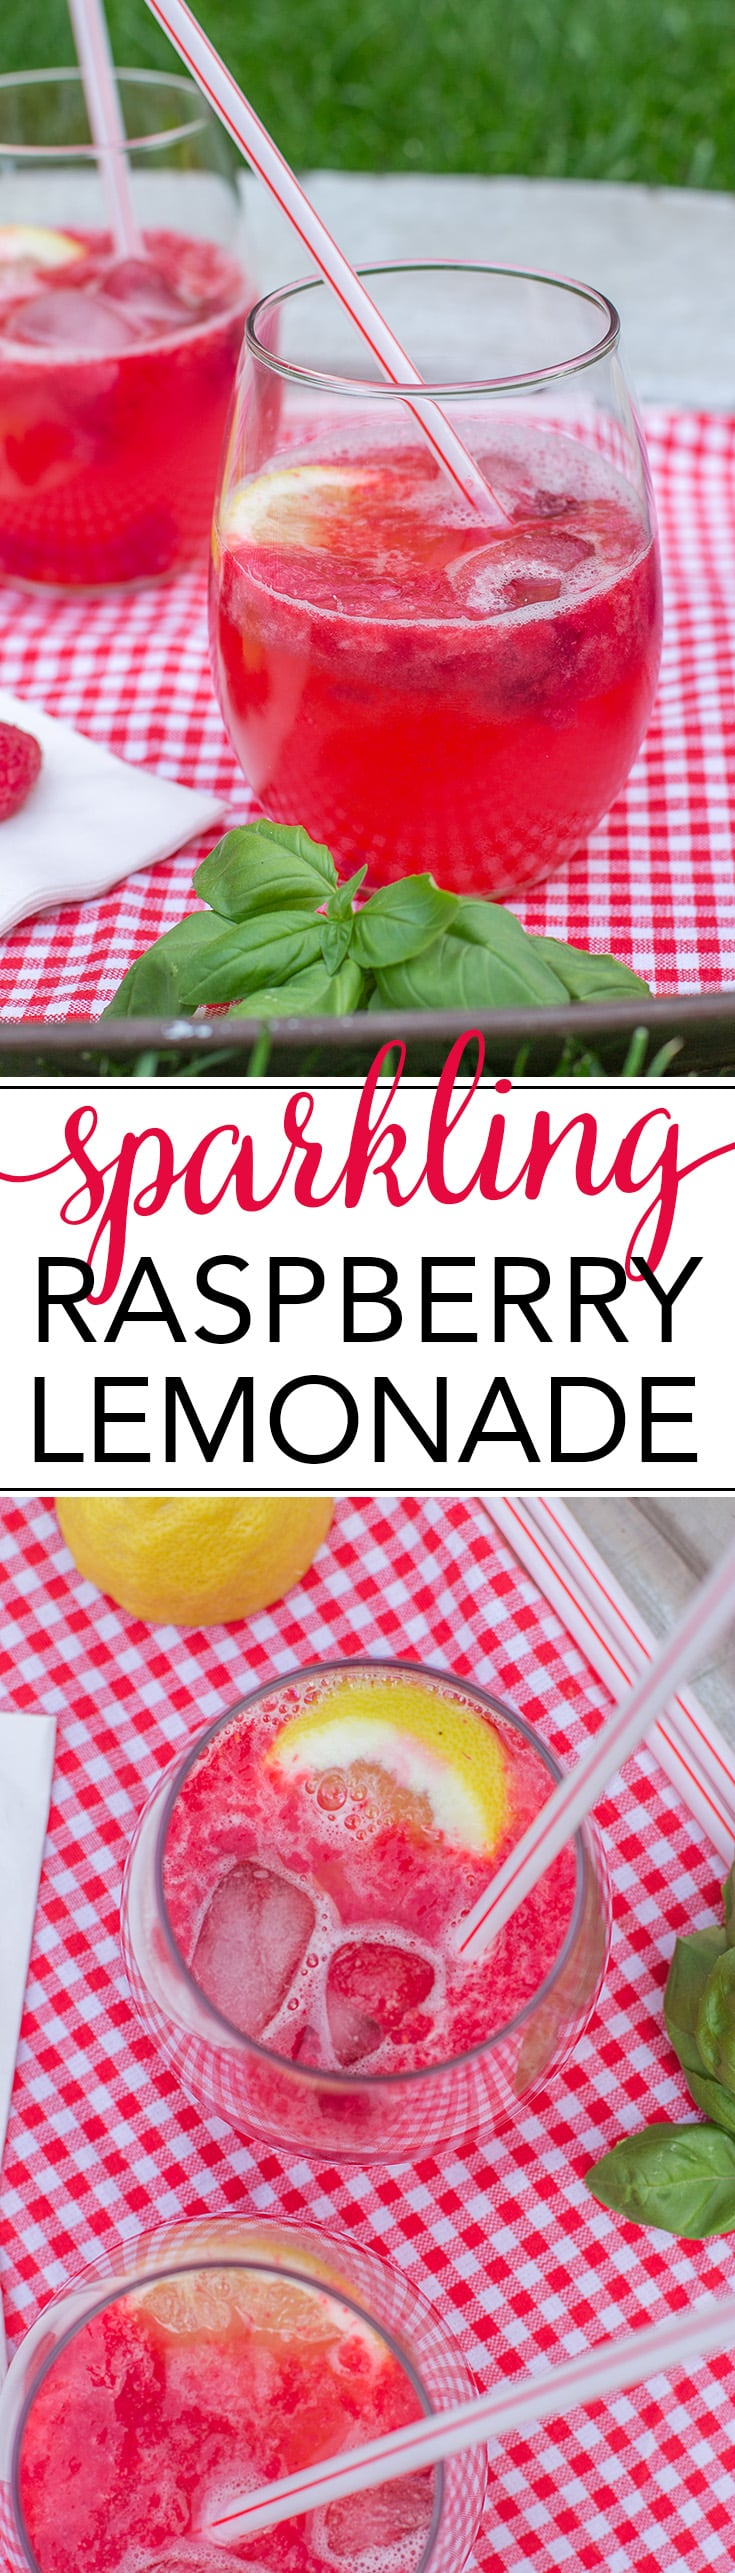 It's summertime! Relax with a tall glass of sparkling raspberry lemonade. Fresh and homemade from just four ingredients. www.nourish-and-fete.com